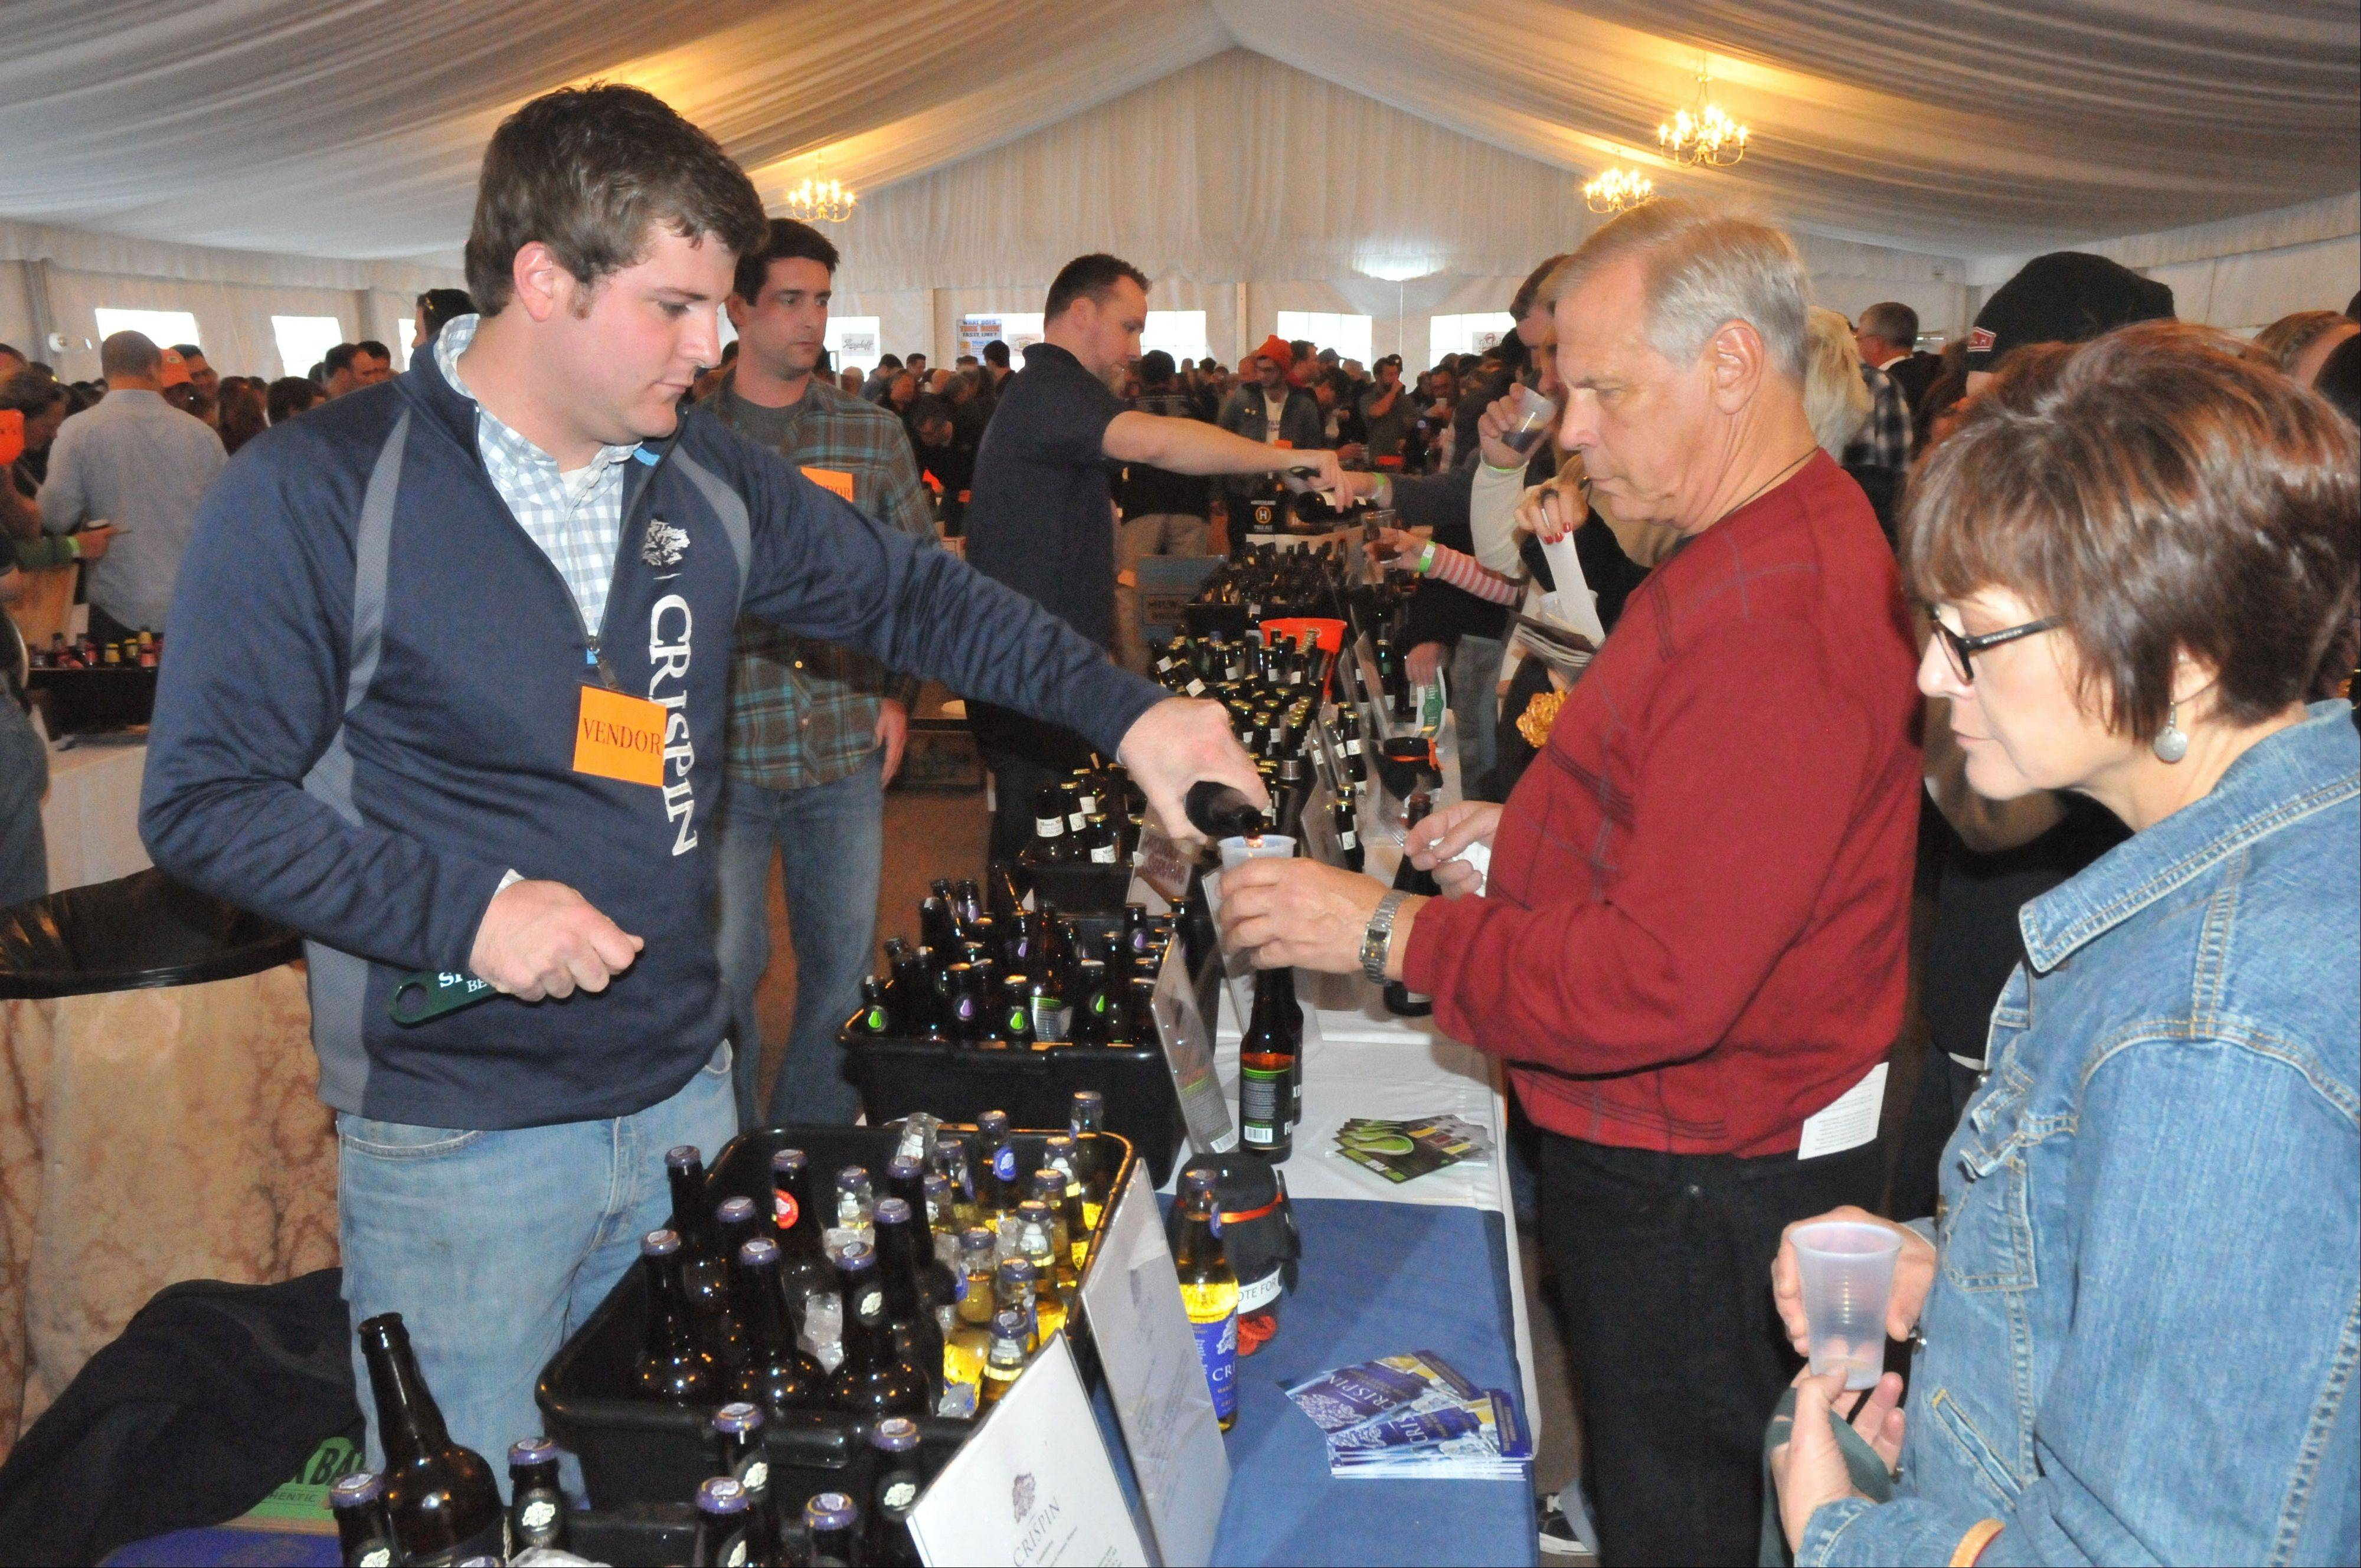 Sample all kinds of beers at the Lake Geneva Beer & Spirits Festival held at the Grand Geneva Resort.